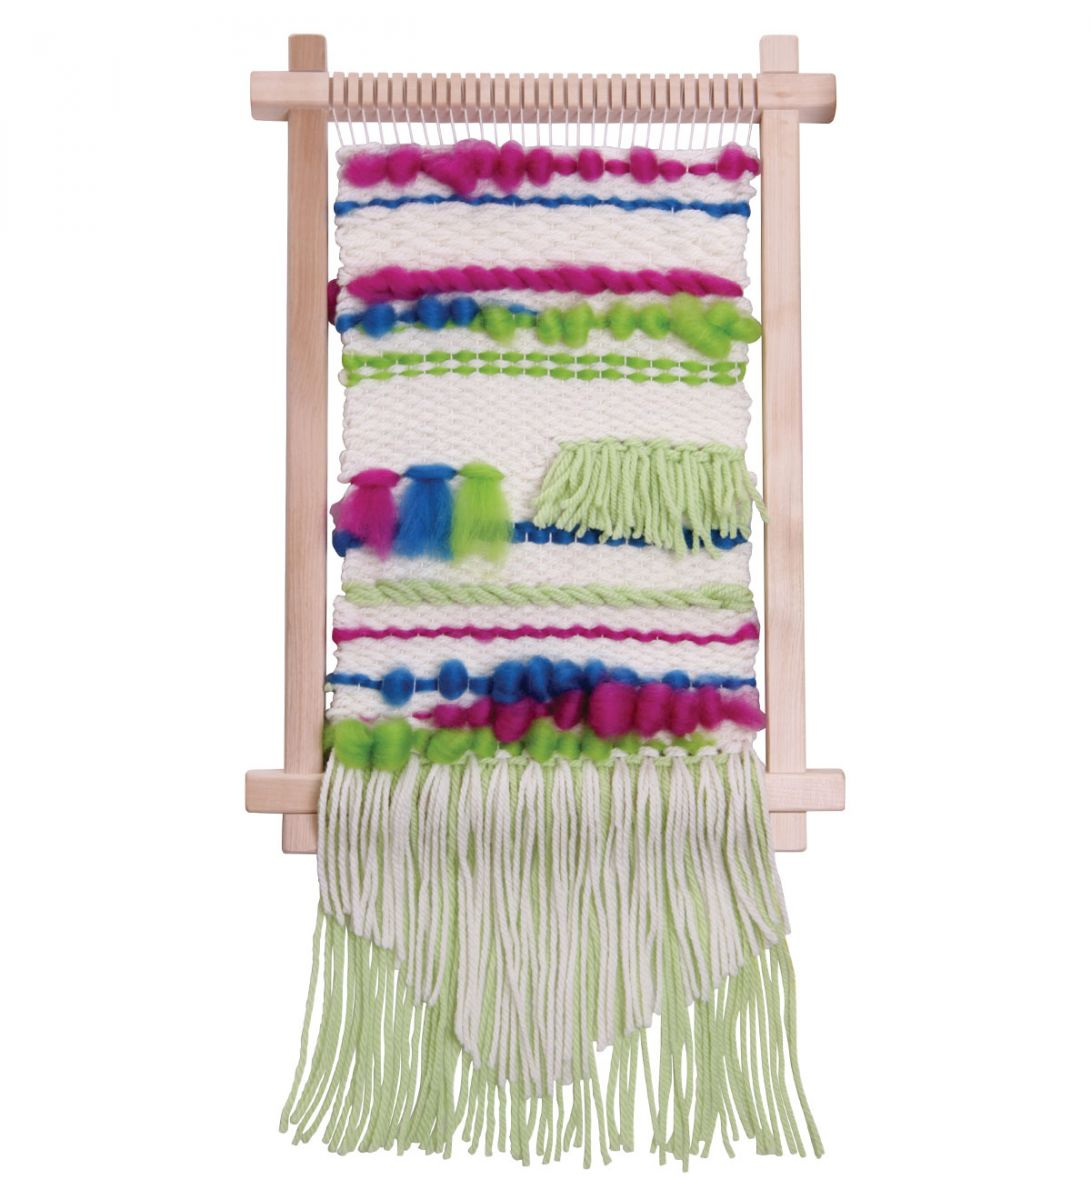 Ashford Tapestry Weaving Frame Loom - Small